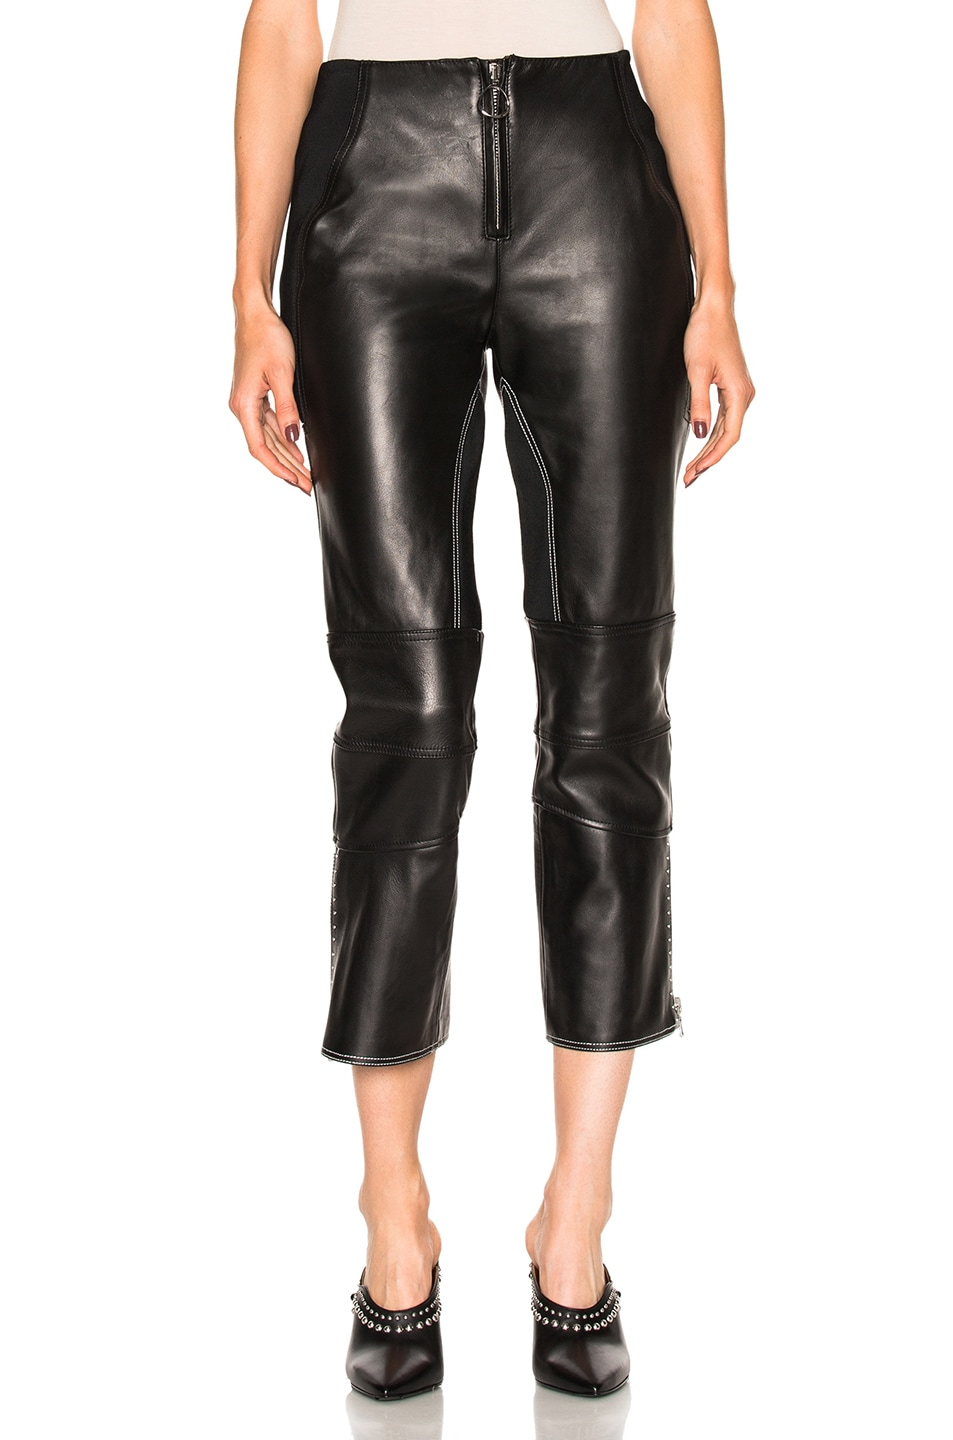 Image 1 of 3.1 phillip lim Leather Biker Pant in Black